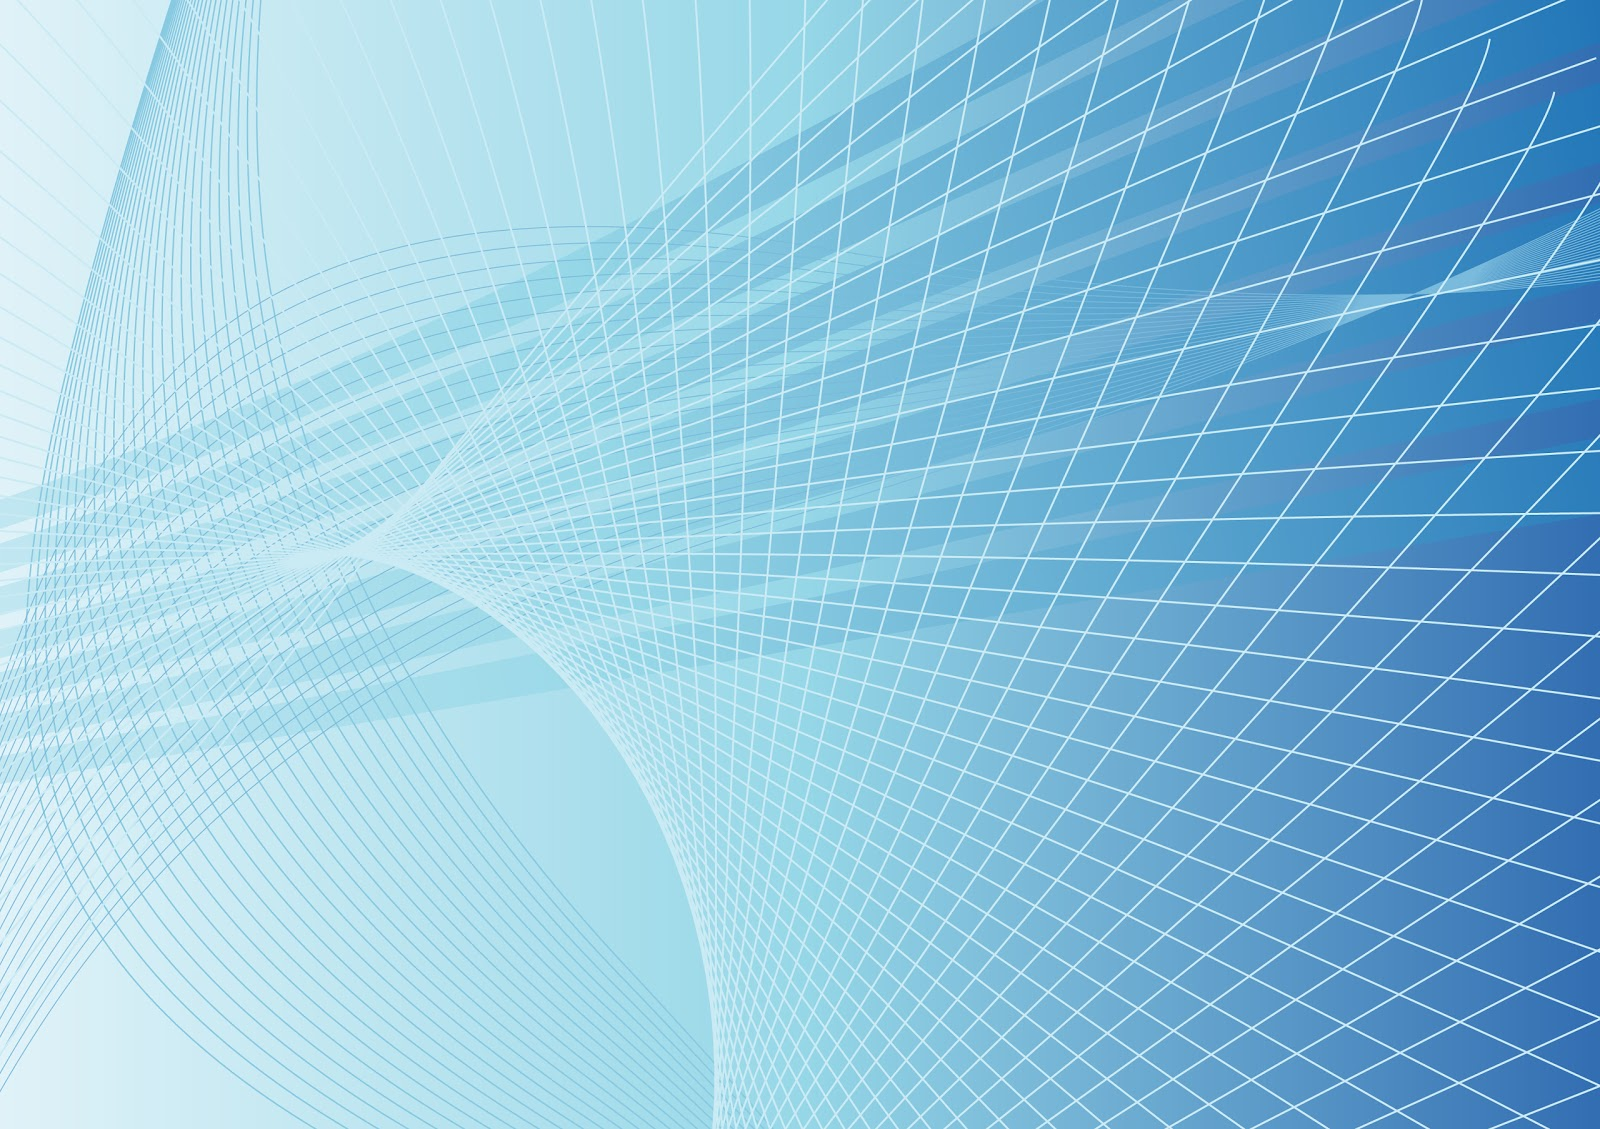 Abstract blue vector background with waves by 123freevectors 1600x1129